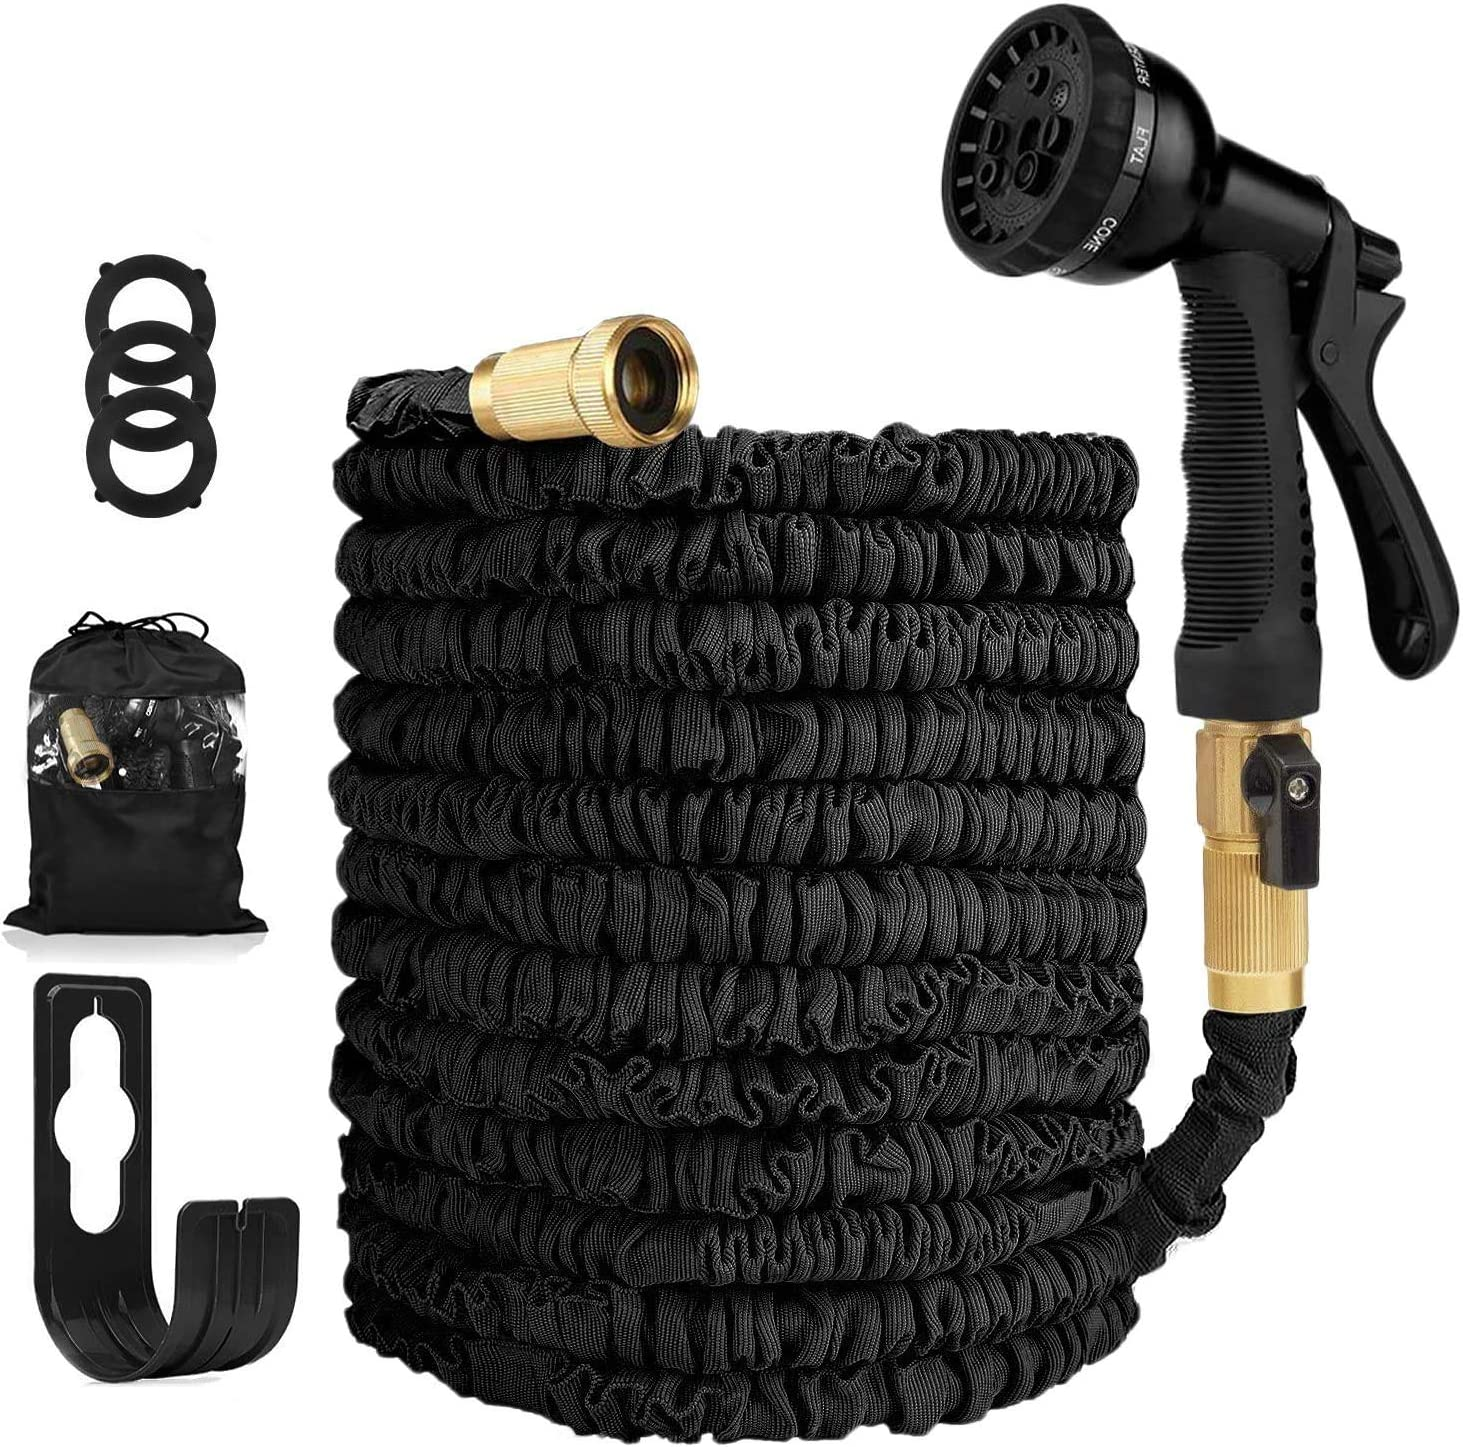 Garden Hose Expandable Hose - Heavy Duty Flexible Leakproof Hose - 8-Pattern High-Pressure Water Spray Nozzle & Bag & Plastic Holder.No Kink Tangle-Free Pocket Water Hose -Black (Black)